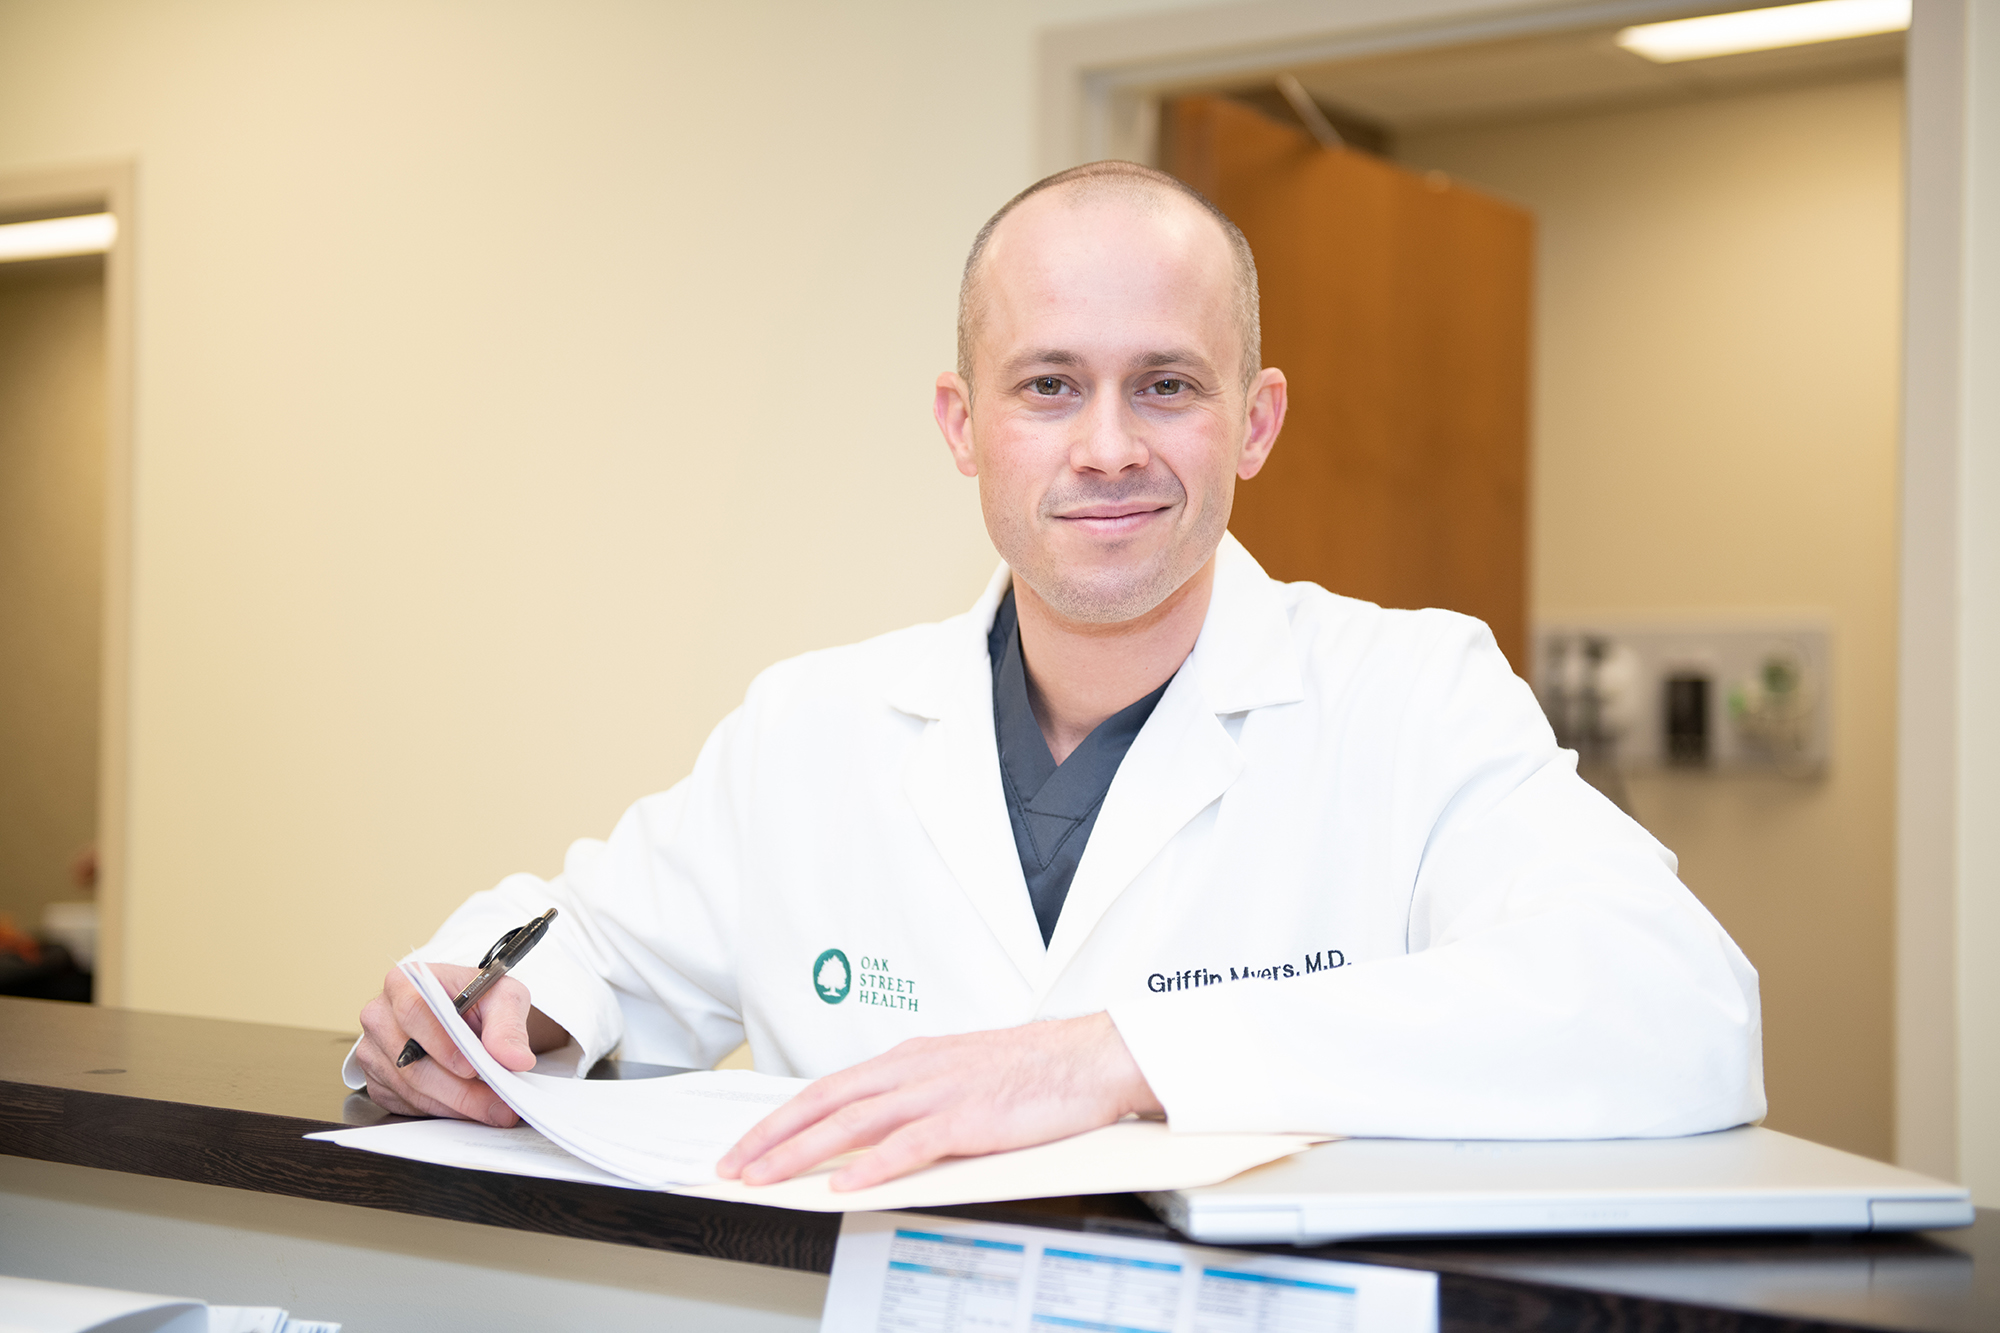 Oak Street Health invests only in value-based care